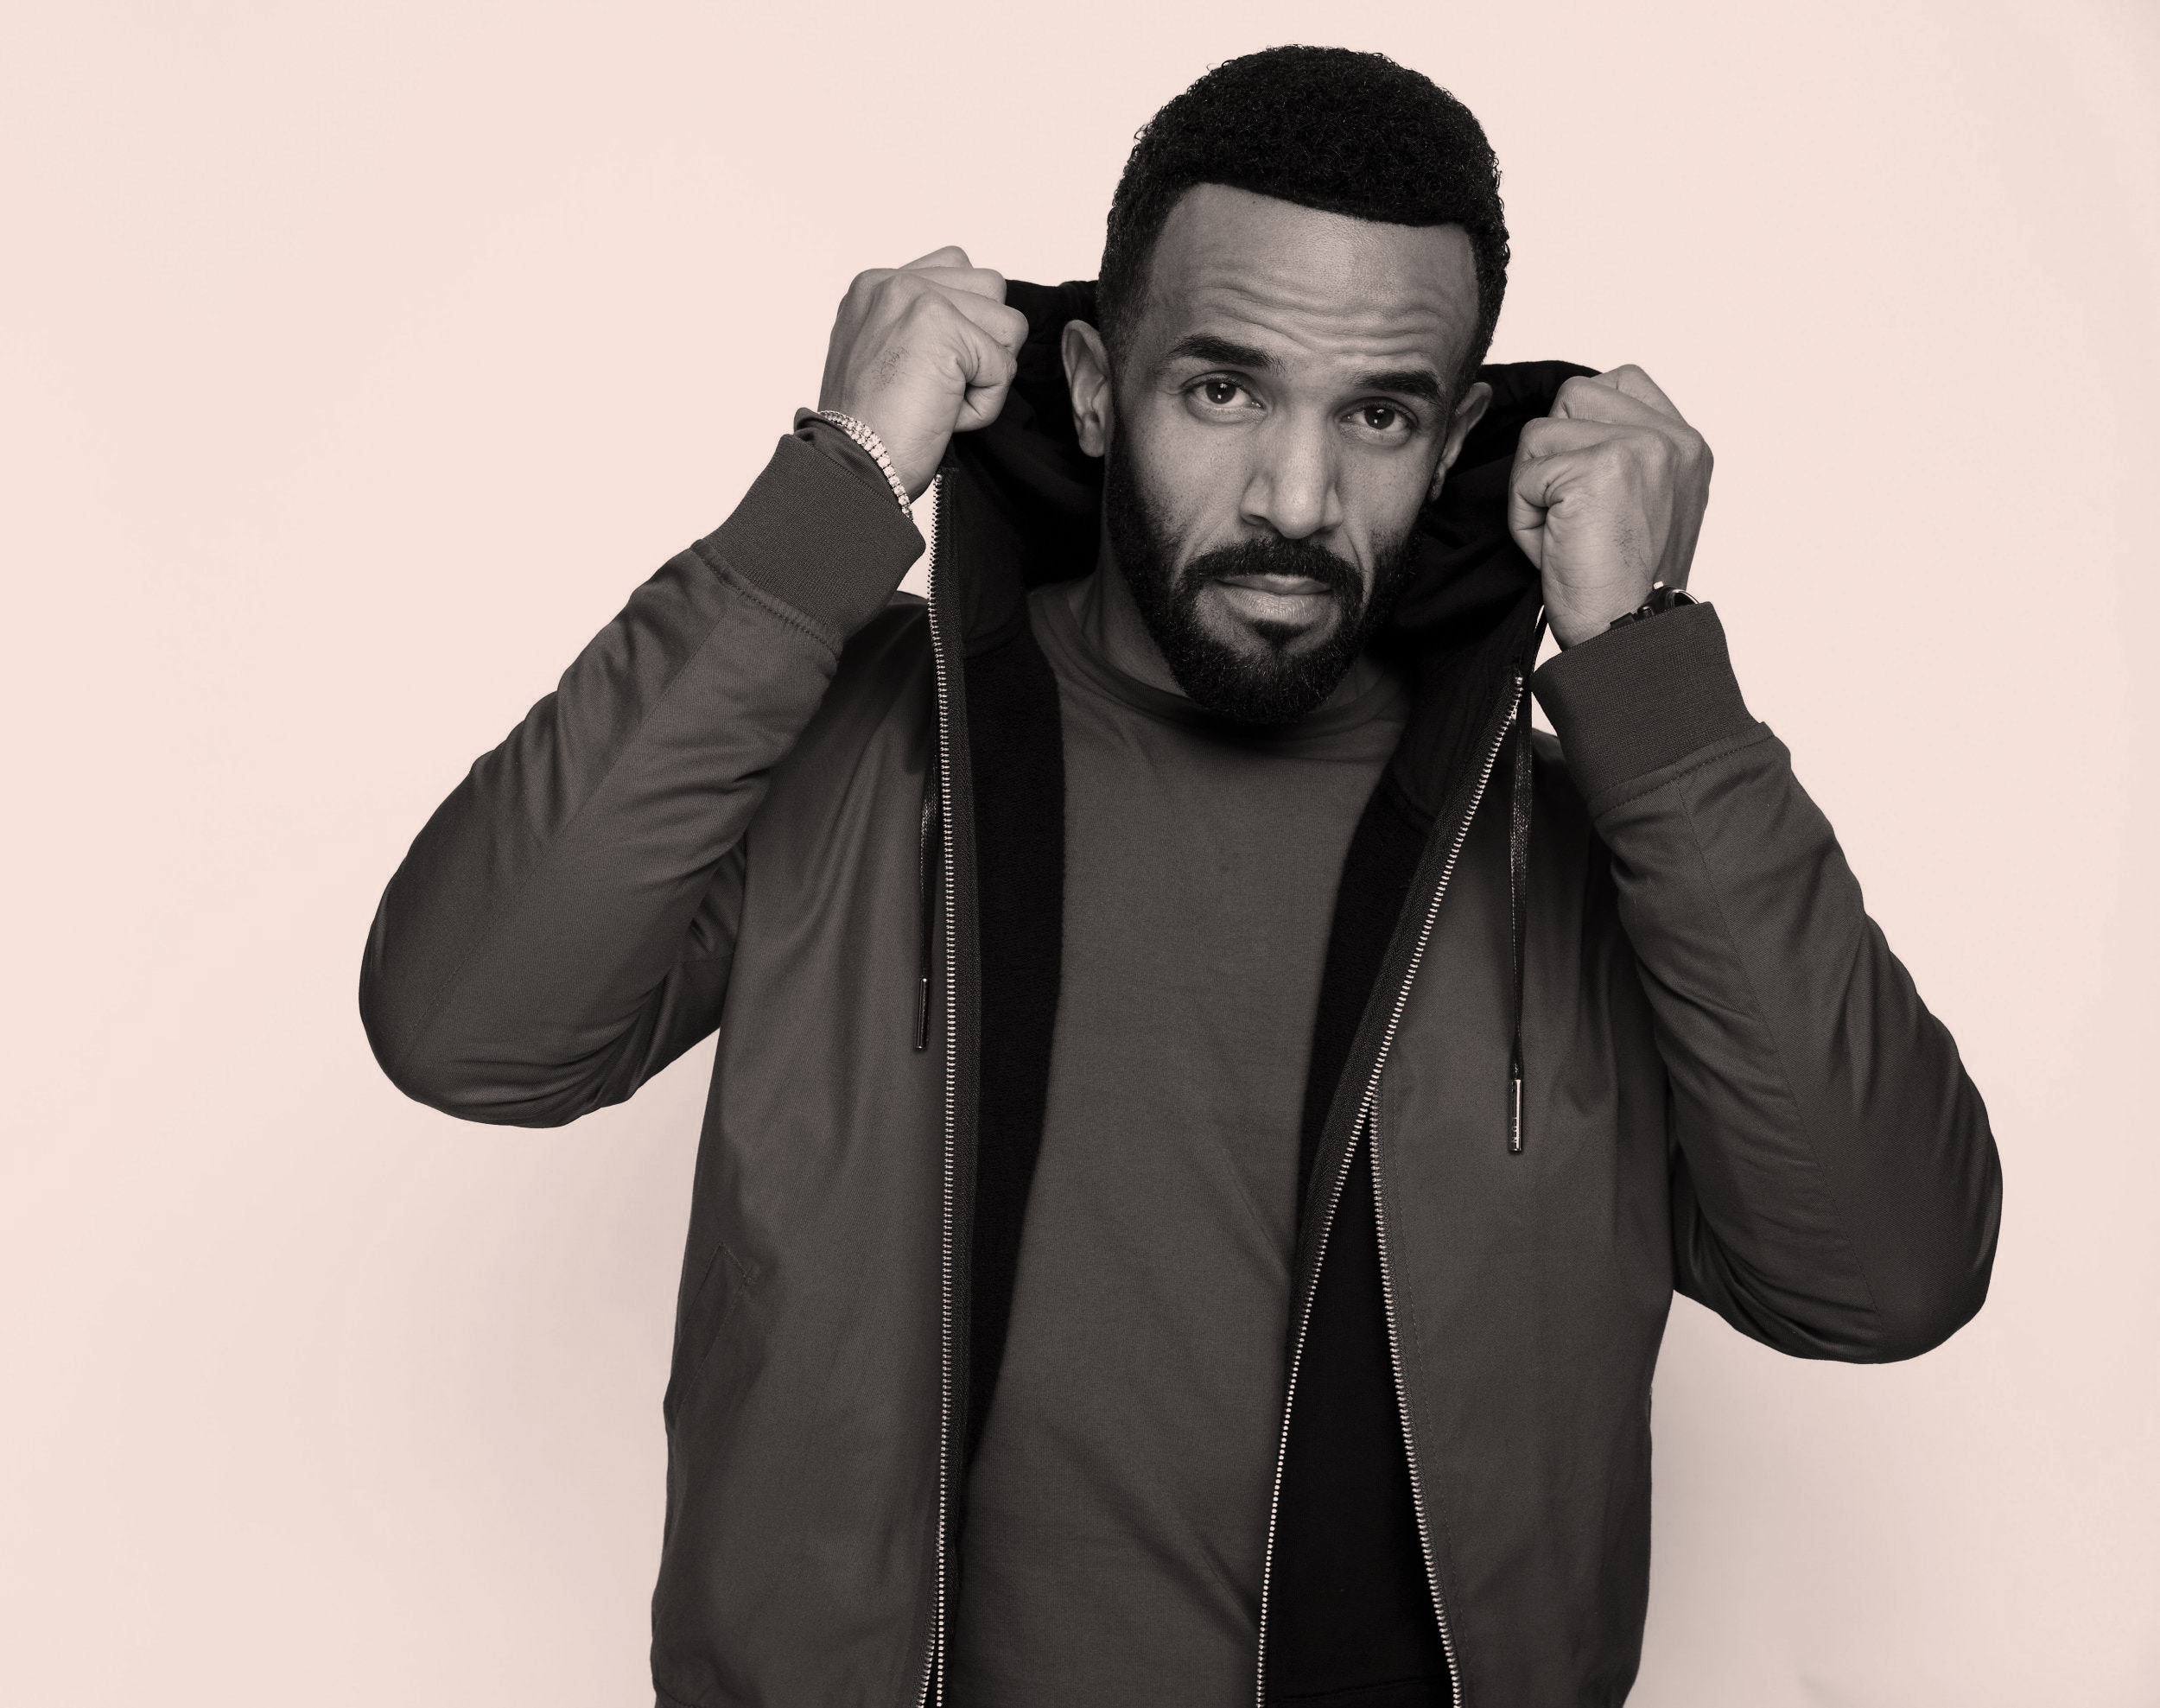 """Craig David - Critically acclaimed """"Born To Do It"""" (which spawned the unforgettable Billboard Chart hits '7 Days', 'Fill Me In', 'Walking Away') was at #1 all over the world. Still holding the record for being the fastest-selling debut album by a British male solo act and also having gone Platinum 6x, Craig David presented his party TS5 with Collective Minds across Singapore, Hong Kong and Bali."""